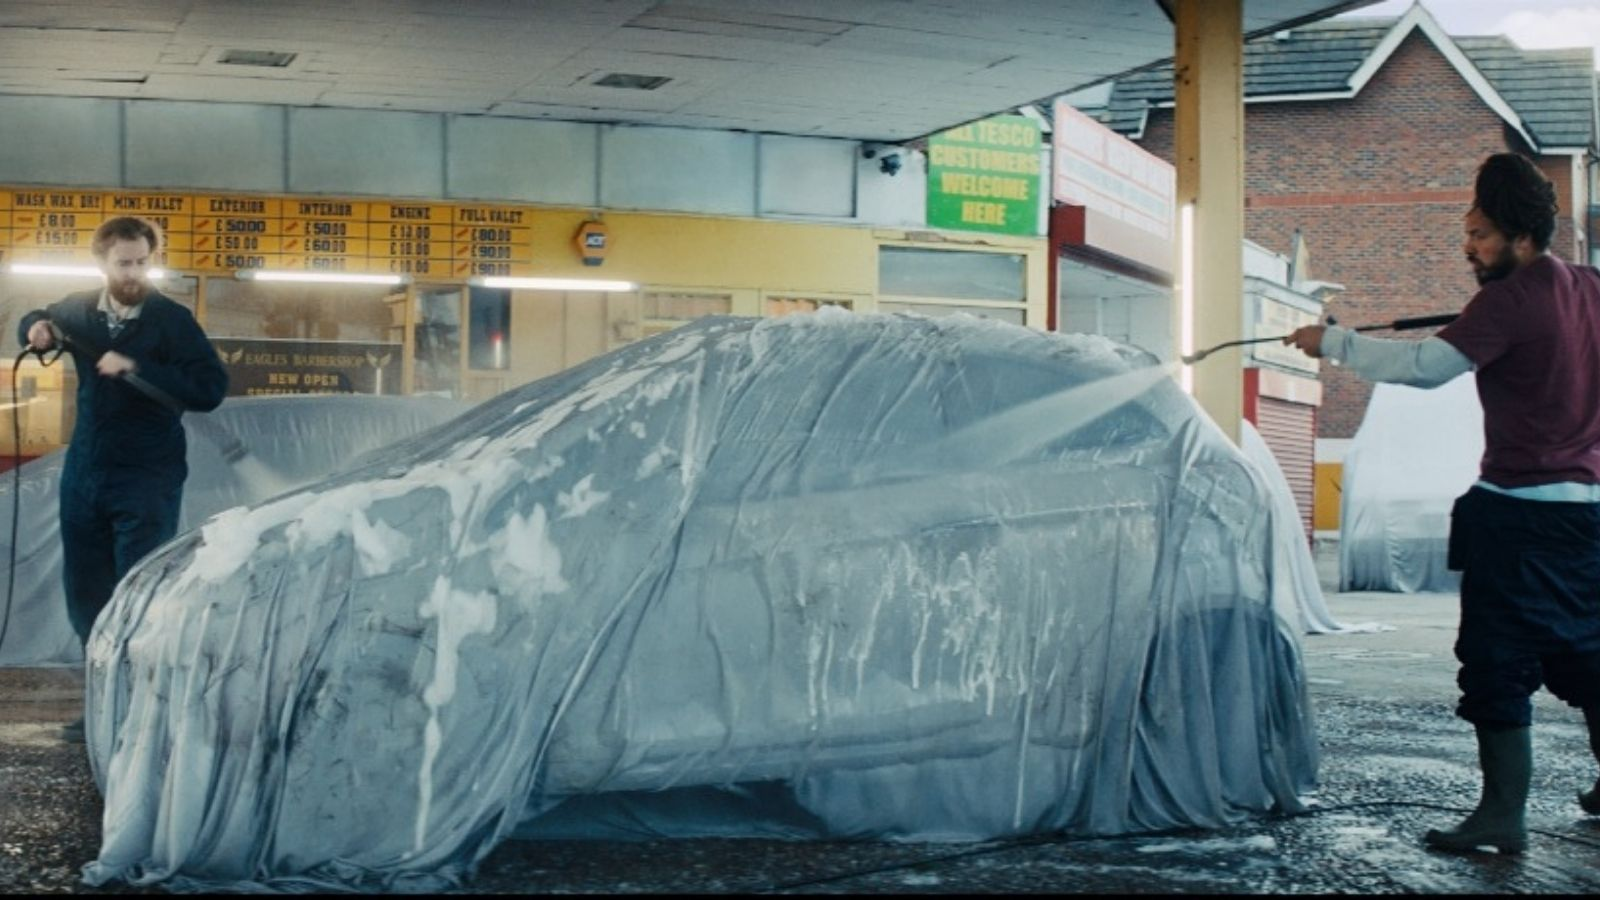 Men wash a car despite it being covered by a sheet